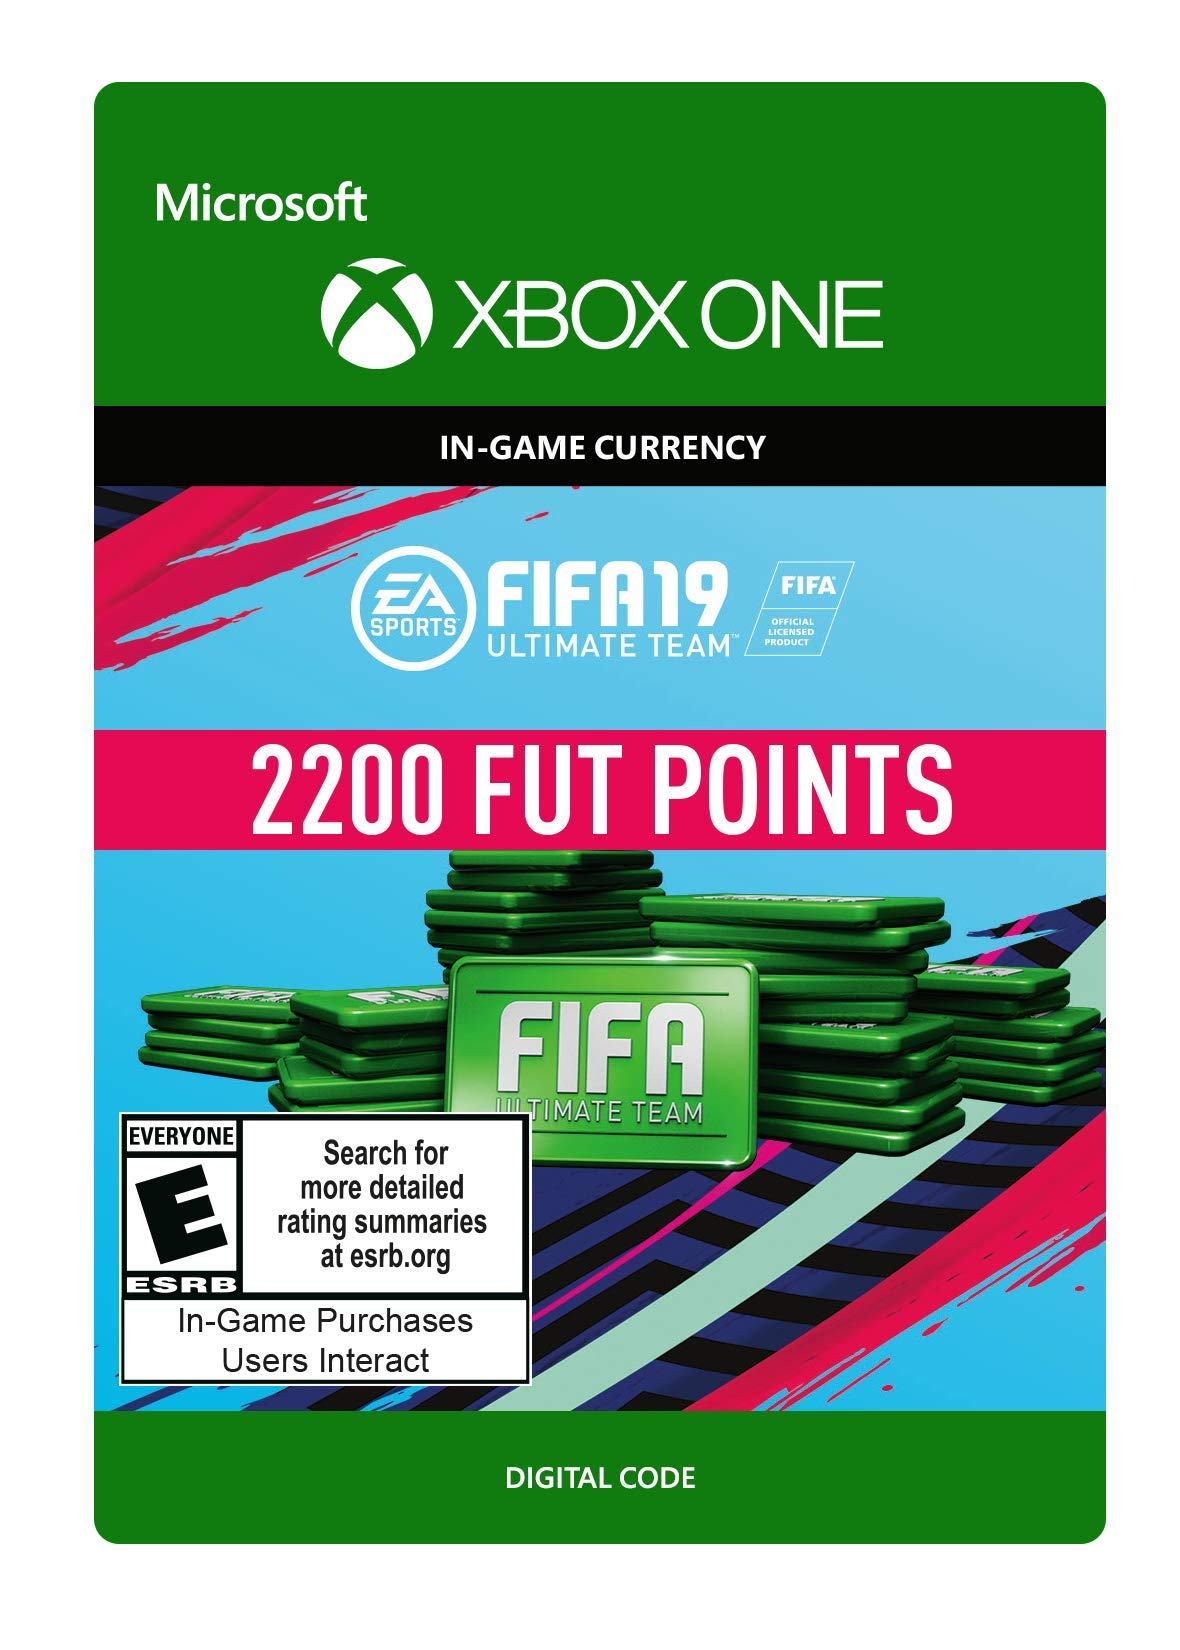 FIFA 19: ULTIMATE TEAM FIFA POINTS 2200 - Xbox One [Digital Code] by Electronic Arts